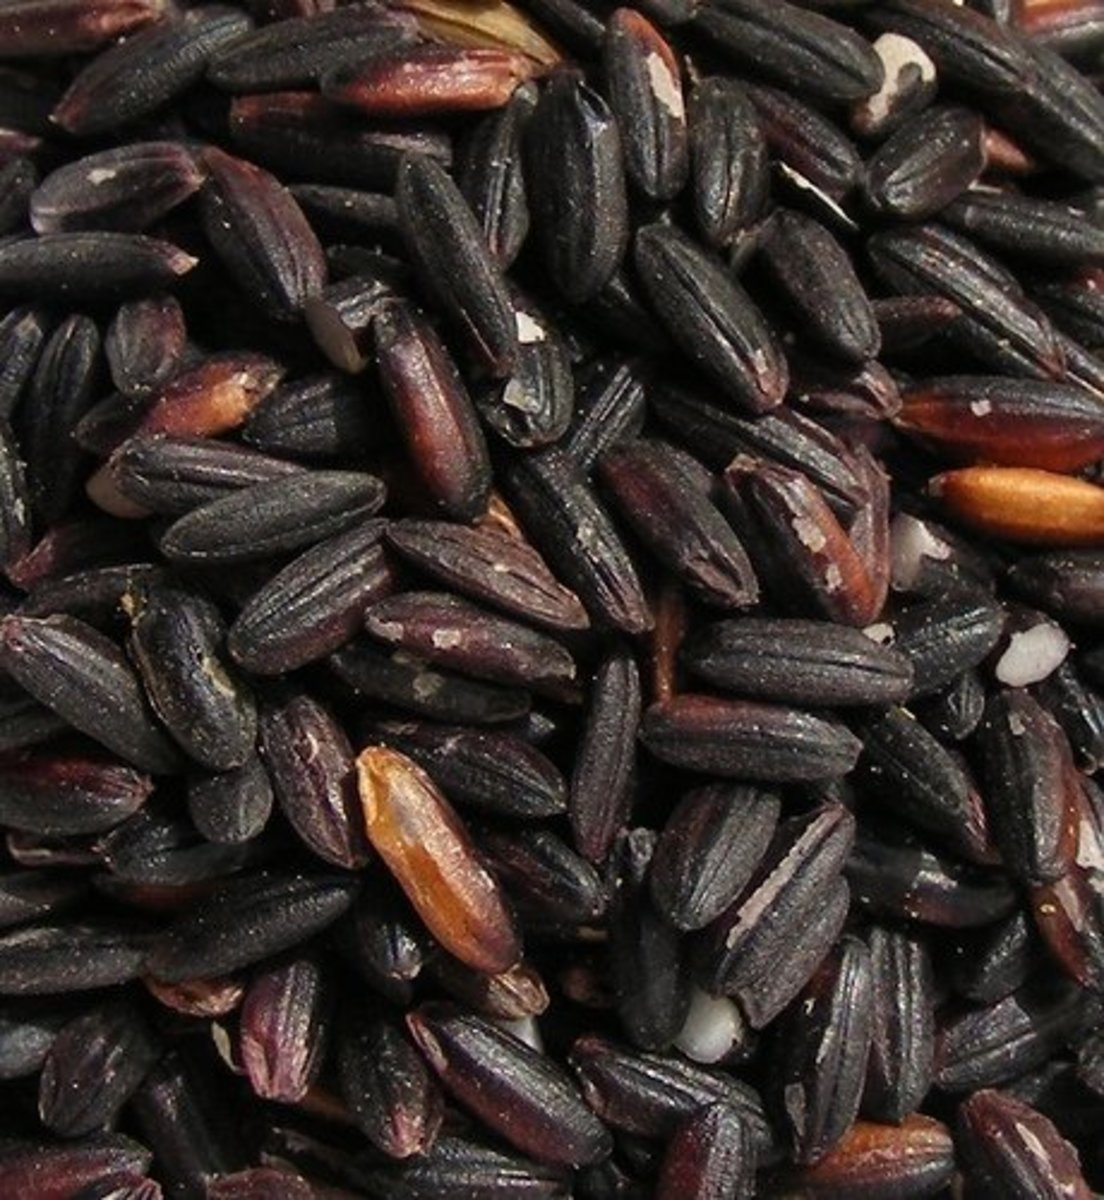 Black Glutinous Rice (Photo courtesy by FotoosVanRobin from Flickr.com)